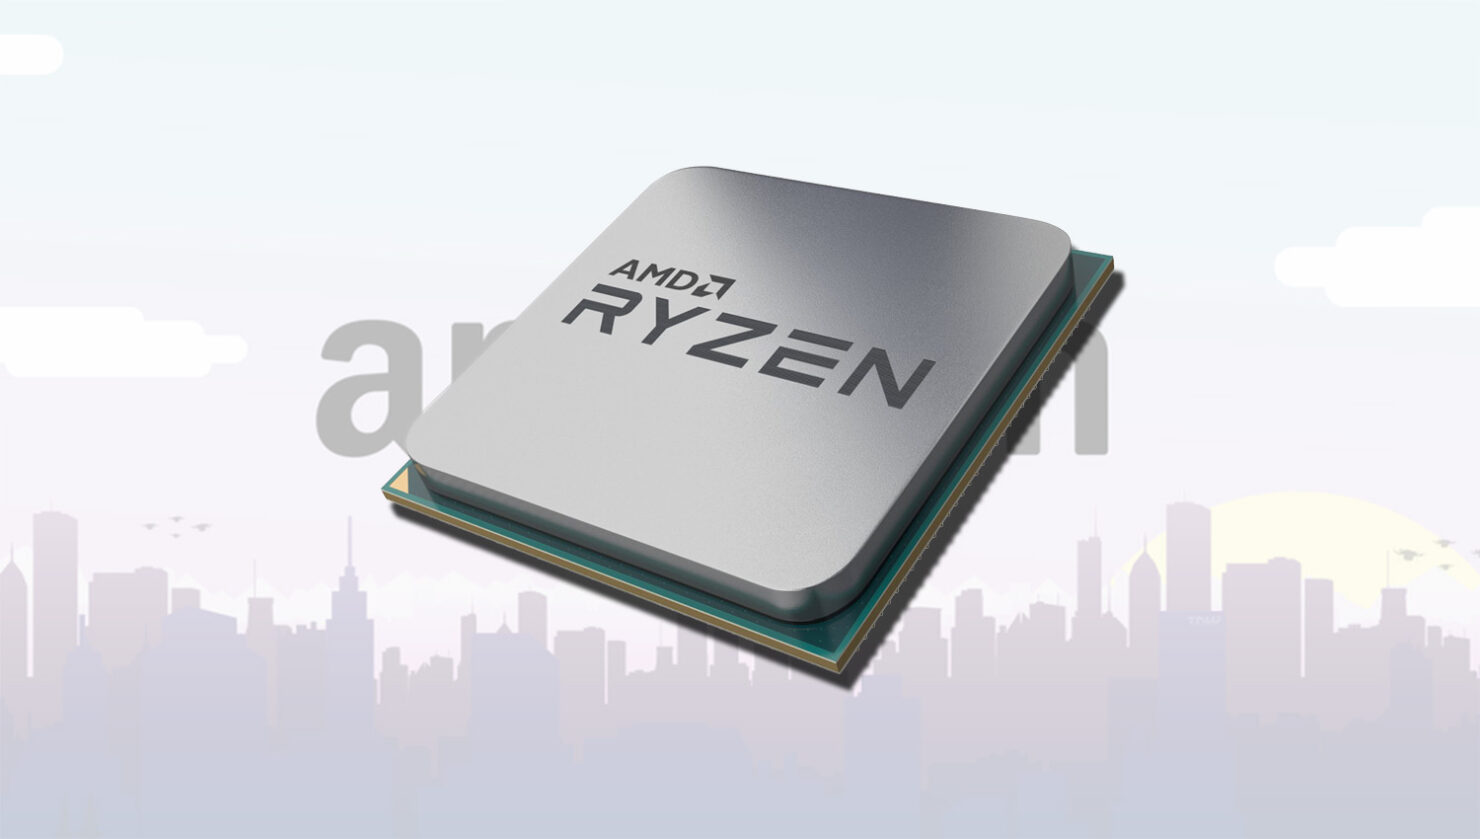 AMD's Ryzen 7 2700x 8-Core Processor Is Available for Less Than $200